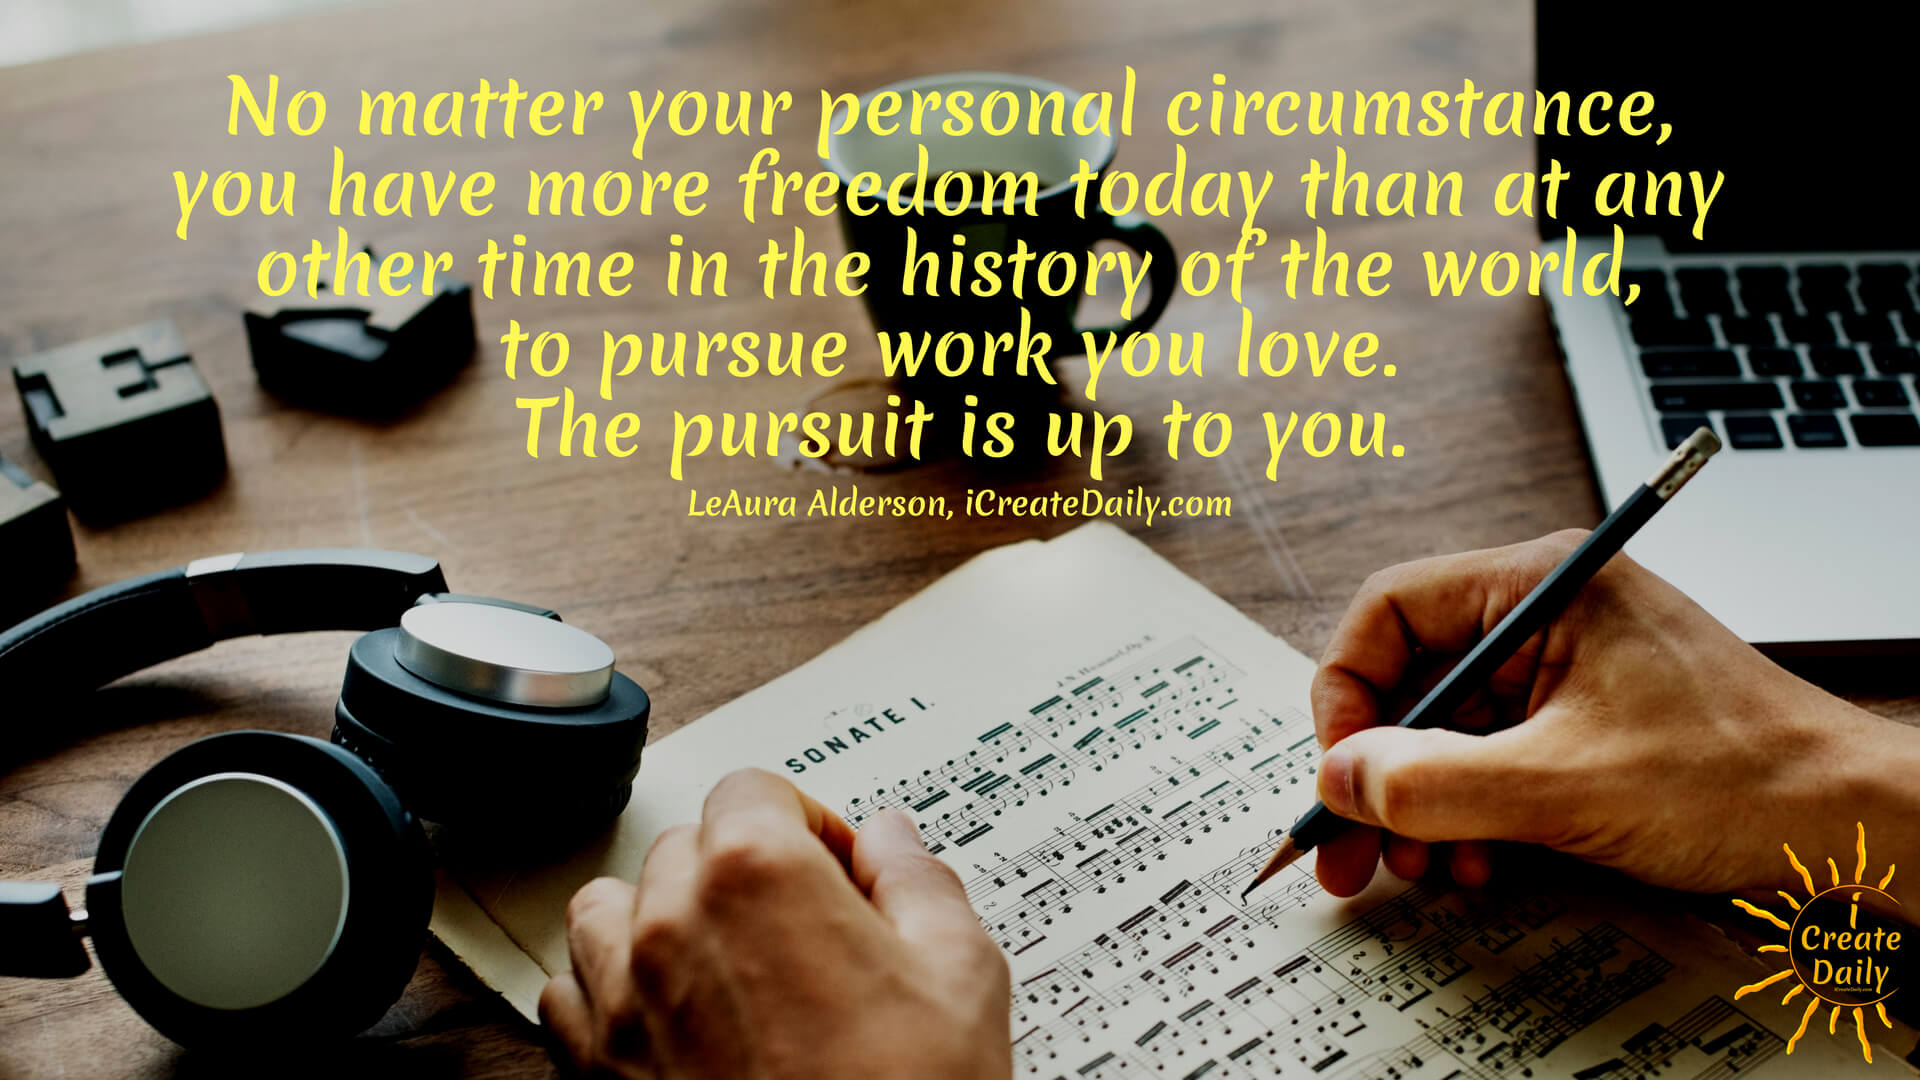 No matter your personal circumstance, you have more freedom today than at any other time in the history of the world, to pursue work you love. The pursuit is up to you. ~LeAura Alderson  #success #quotes #goals #life #freedom  #WhatAreYouPassionateAbout #iCreateDaily